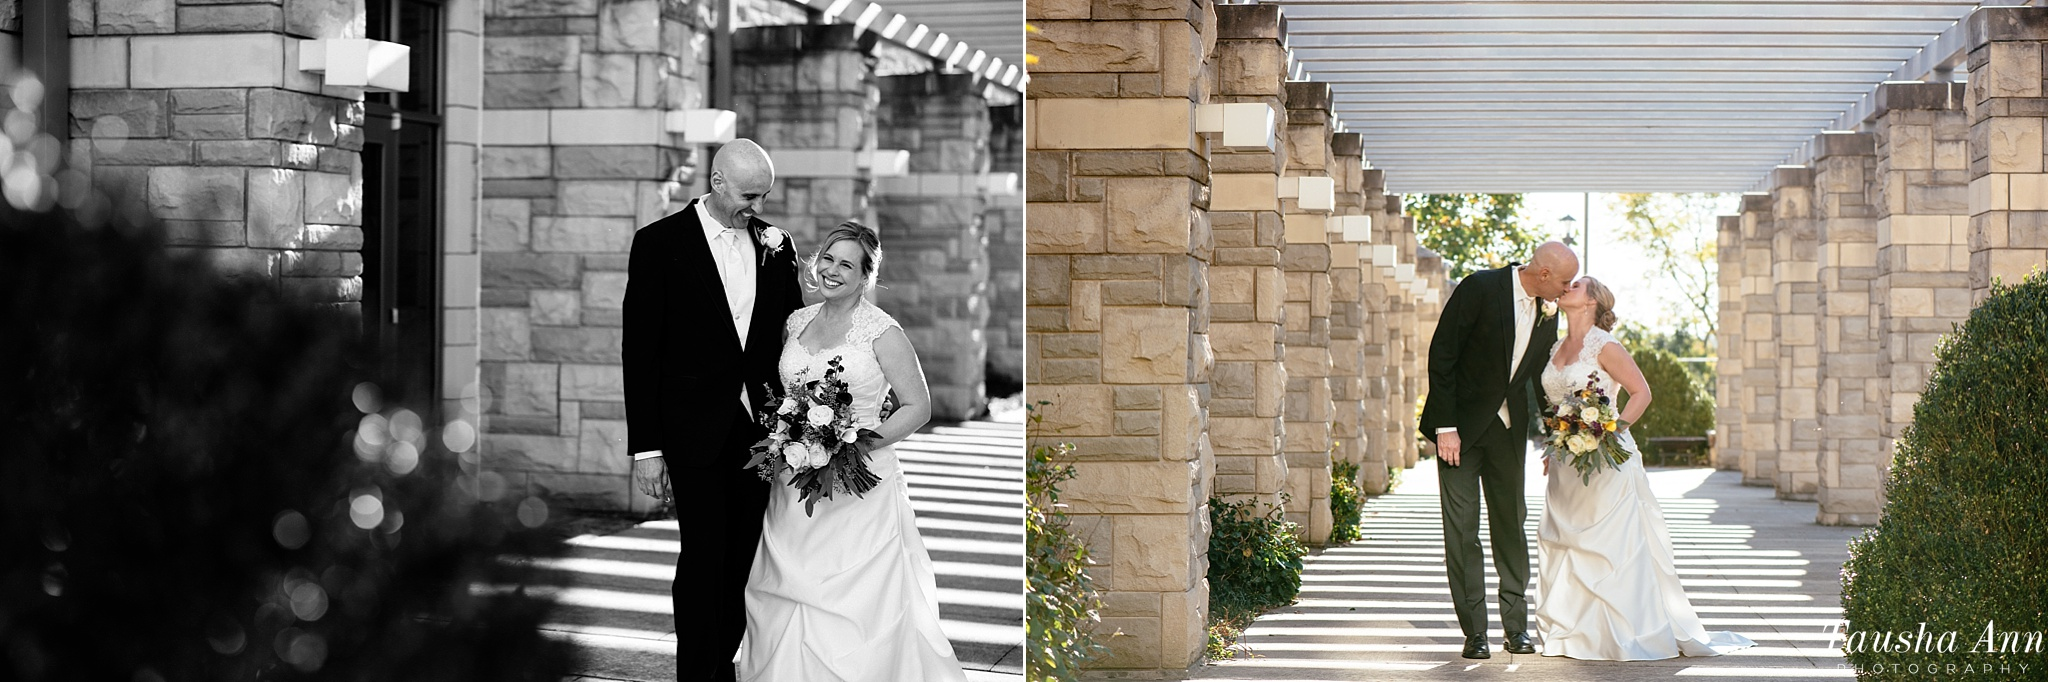 Bride and Groom Portraits outdoors in breezeway